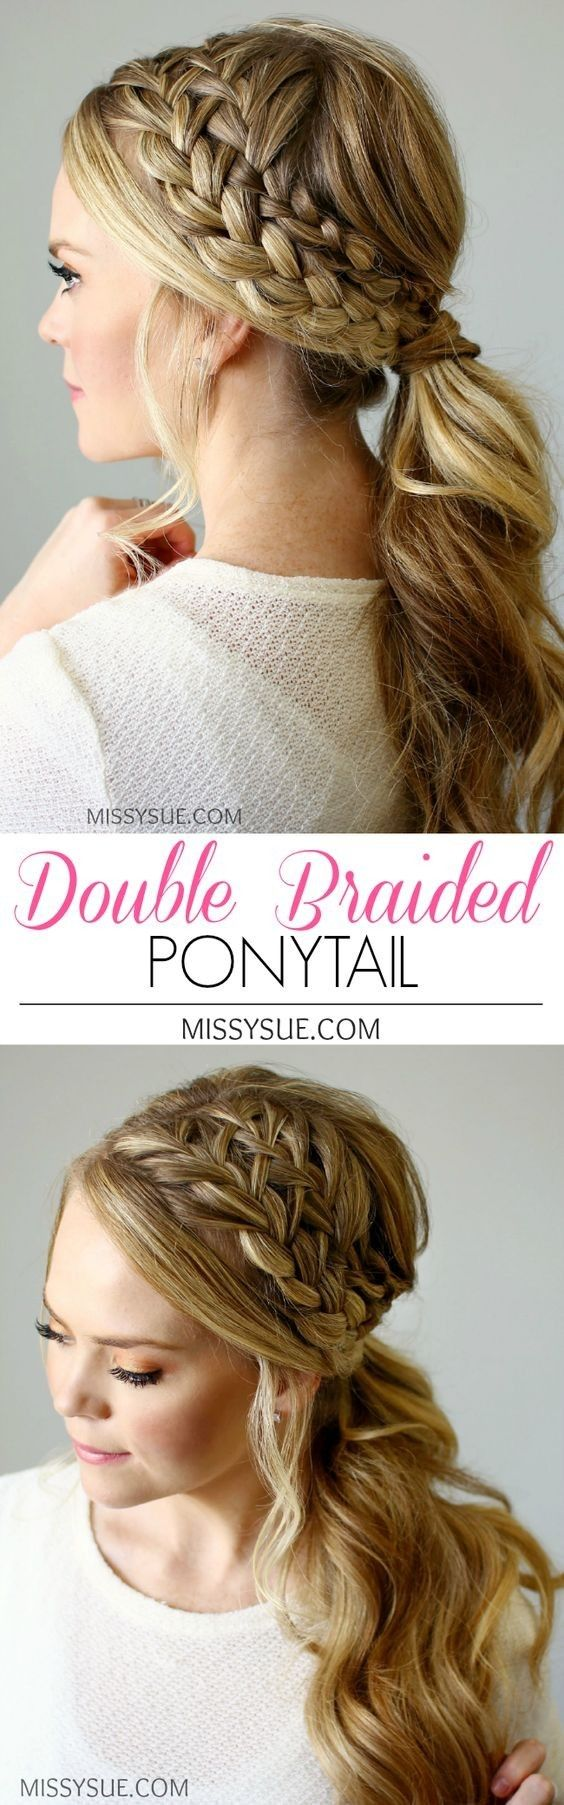 Double Braided Ponytail Hair Style - Pretty Holiday Hairstyles for Women